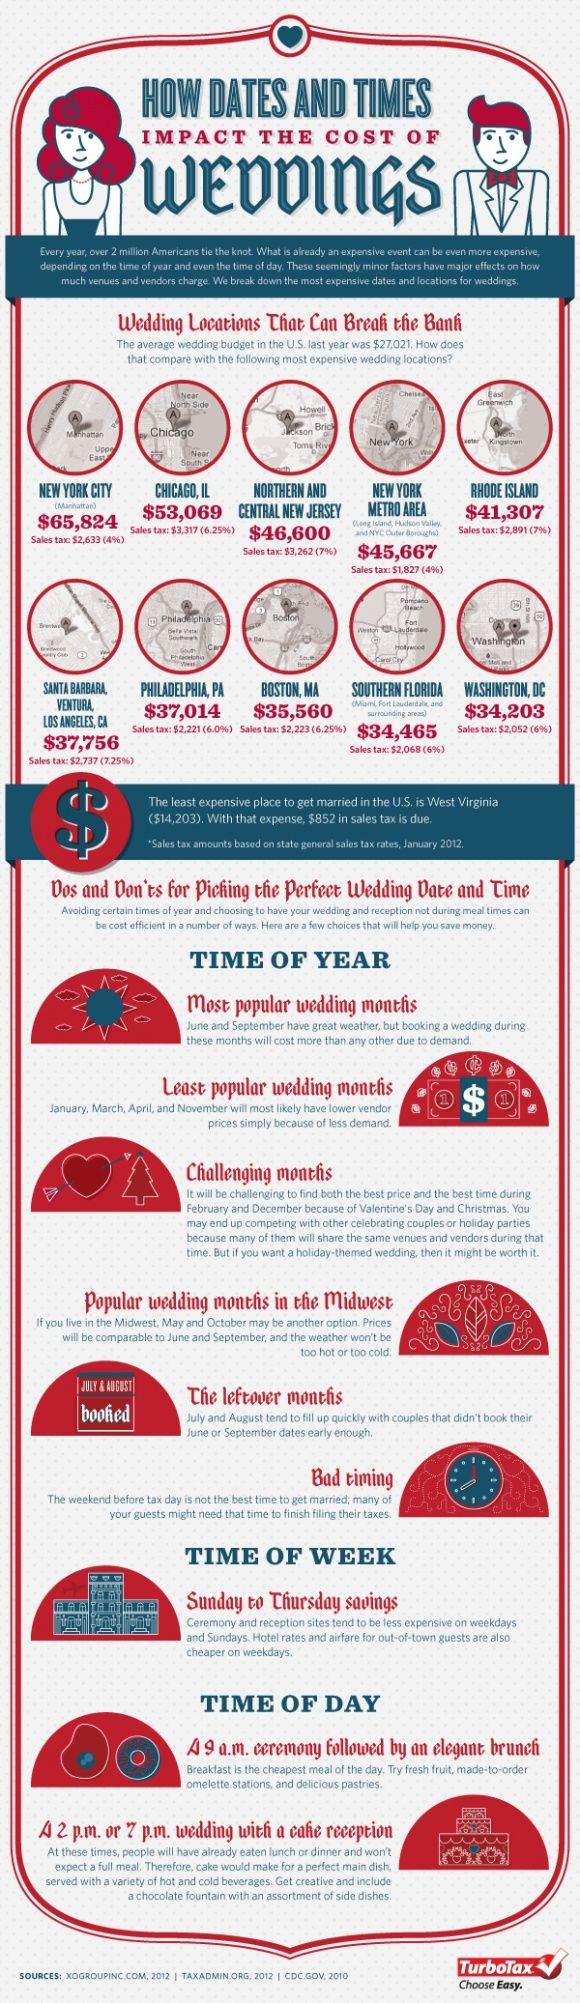 Save Money and Pick a Date – Depending on where you live, certain days and times of the year can drive your wedding costs up. So decide on a date that is best for you before deciding on the perfect venue. Use this guide created by Turbo Tax.